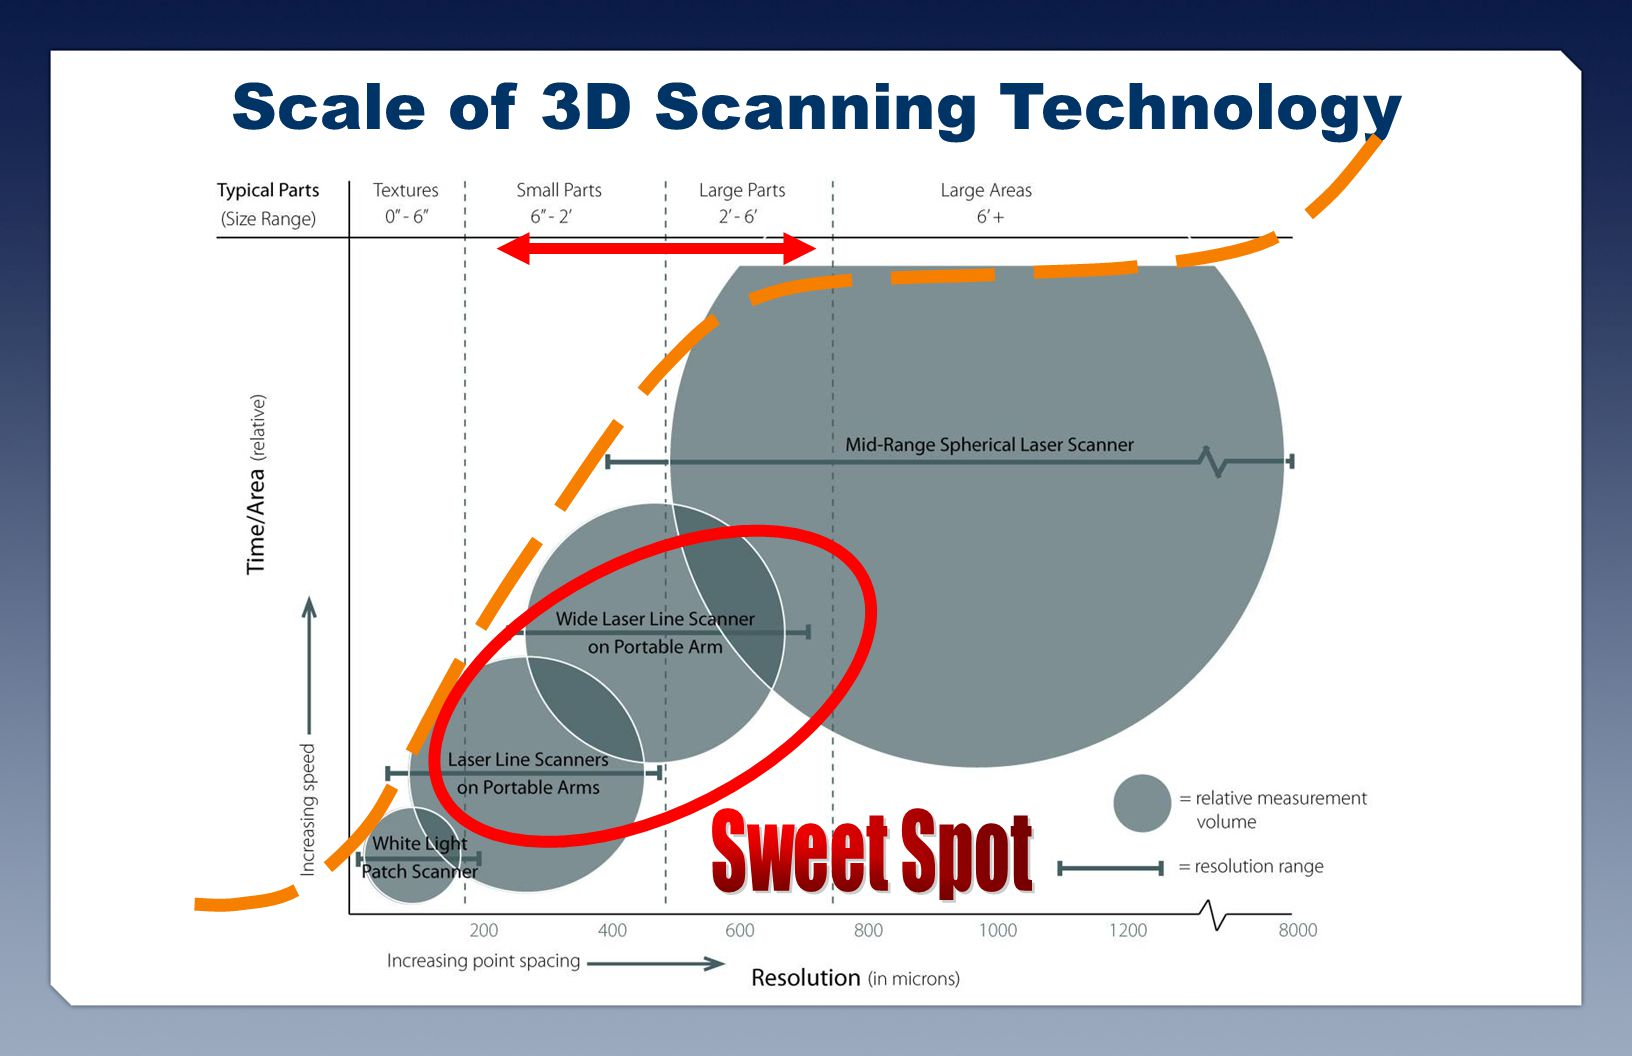 Scale of 3D Scanning Technology